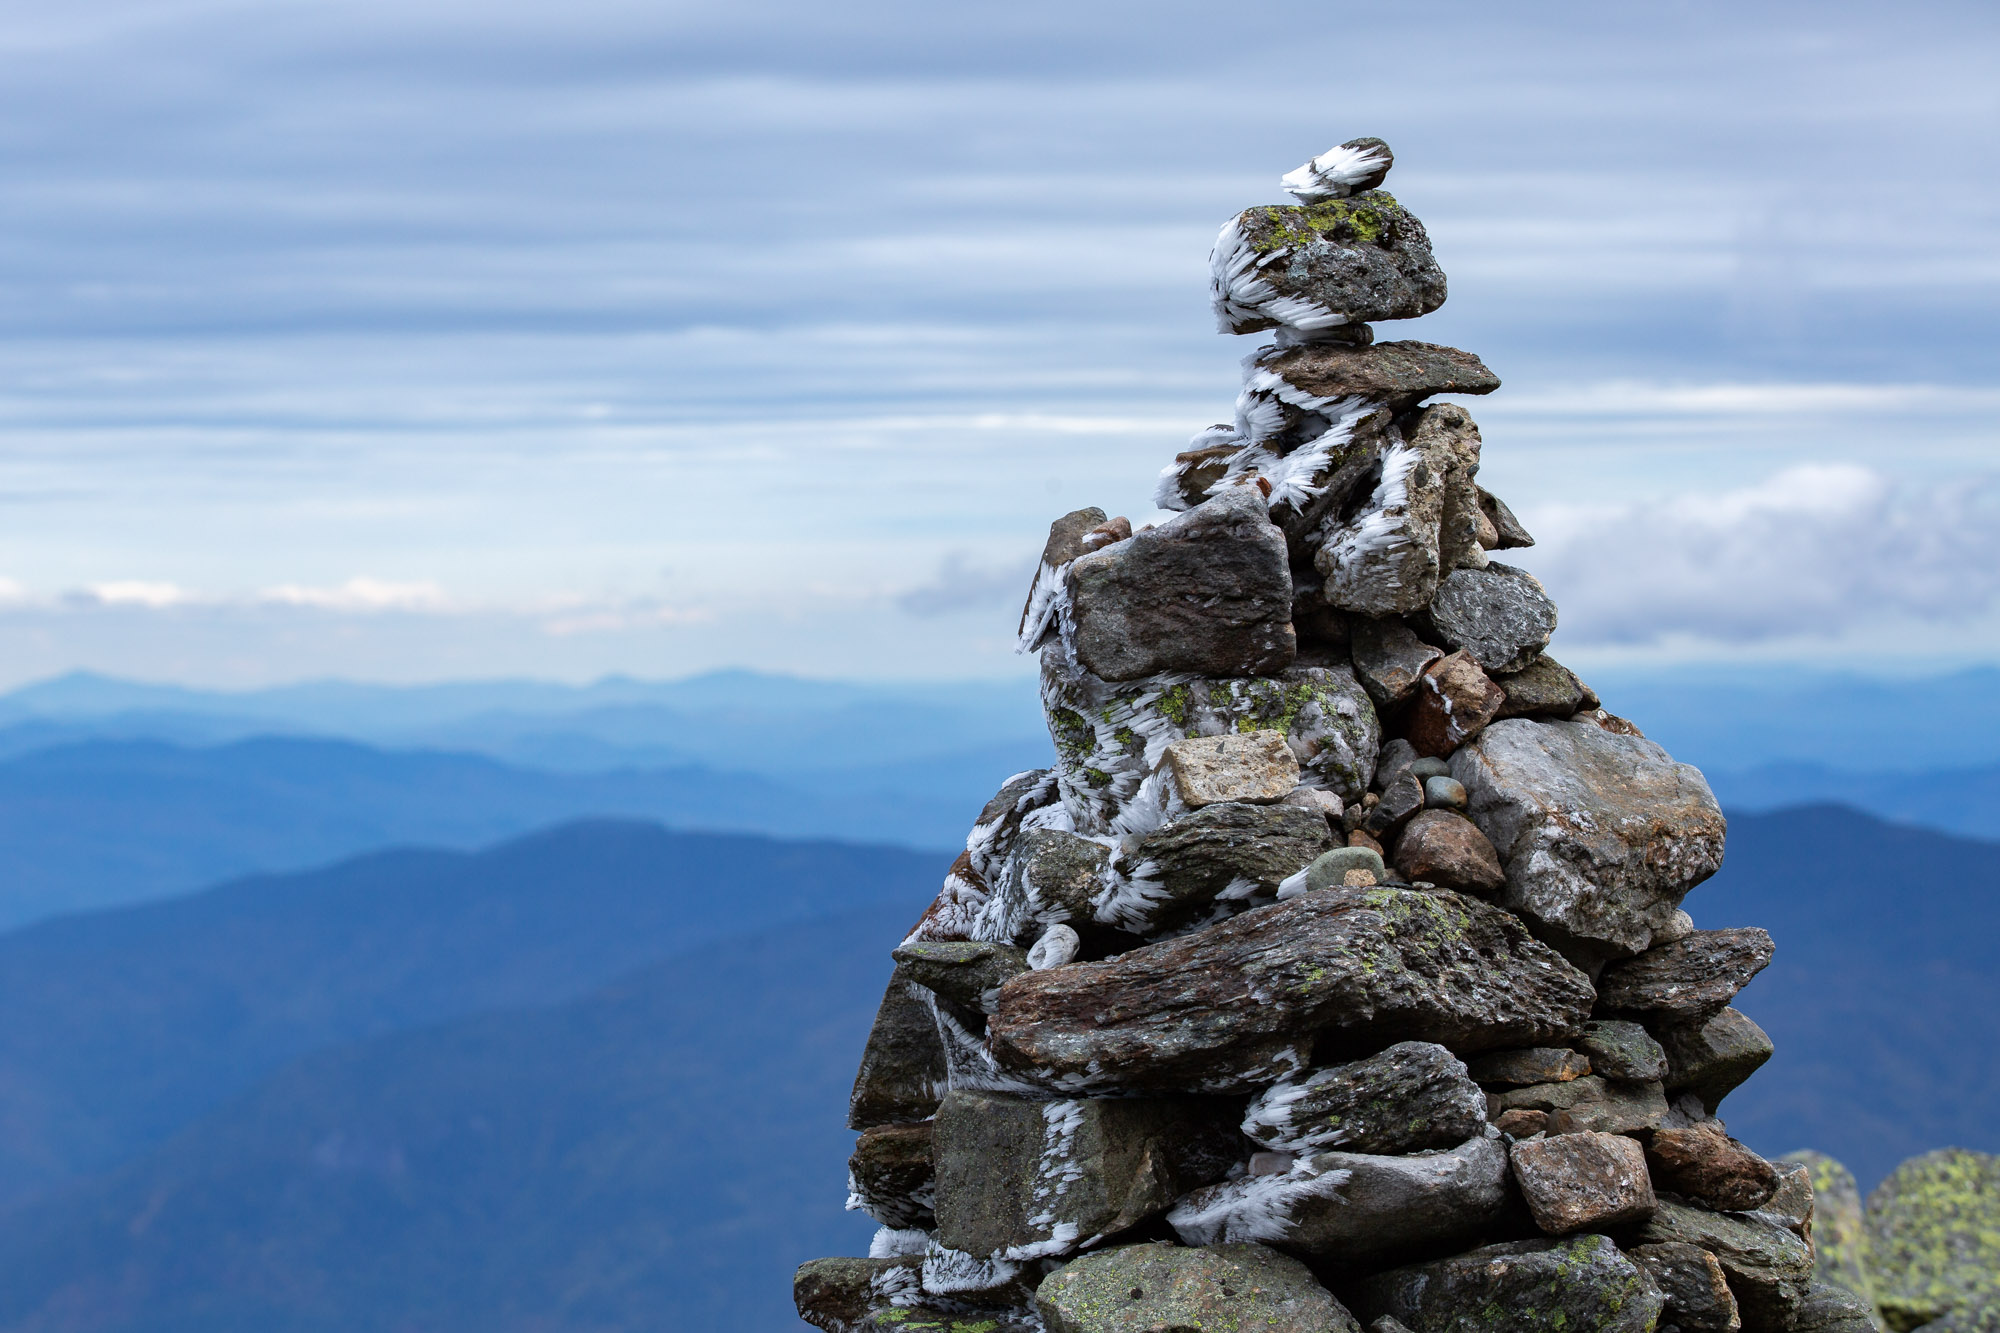 Cairns atop Mt Washington